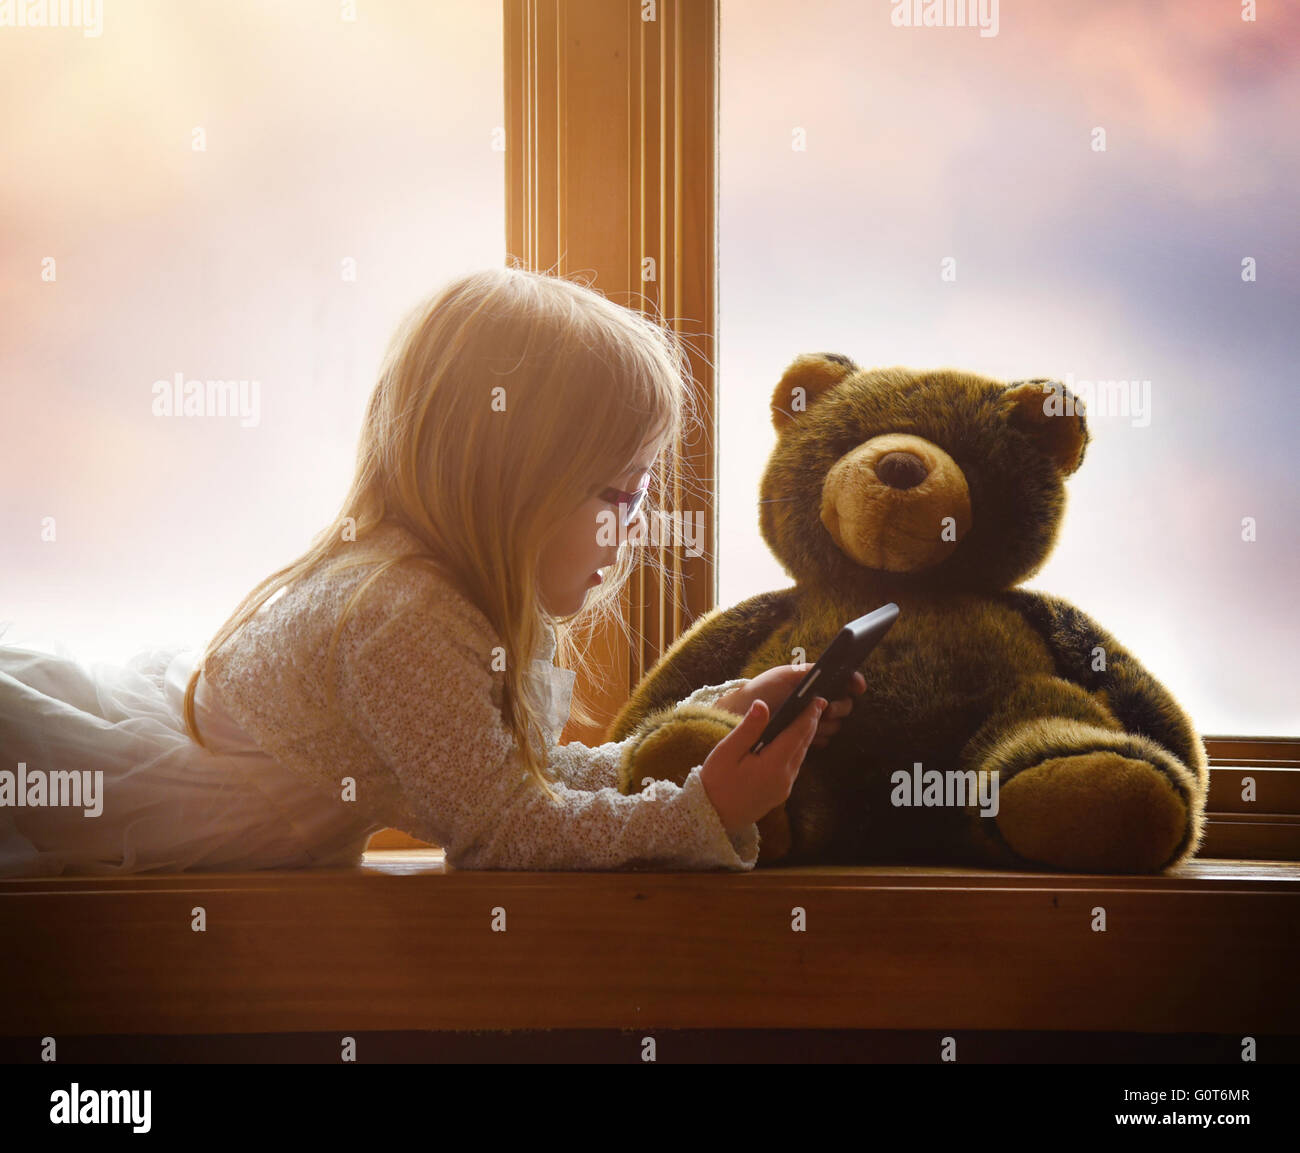 A little child is playing with an electronic tablet in a window with her teddy bear for a game, app or entertainment - Stock Image